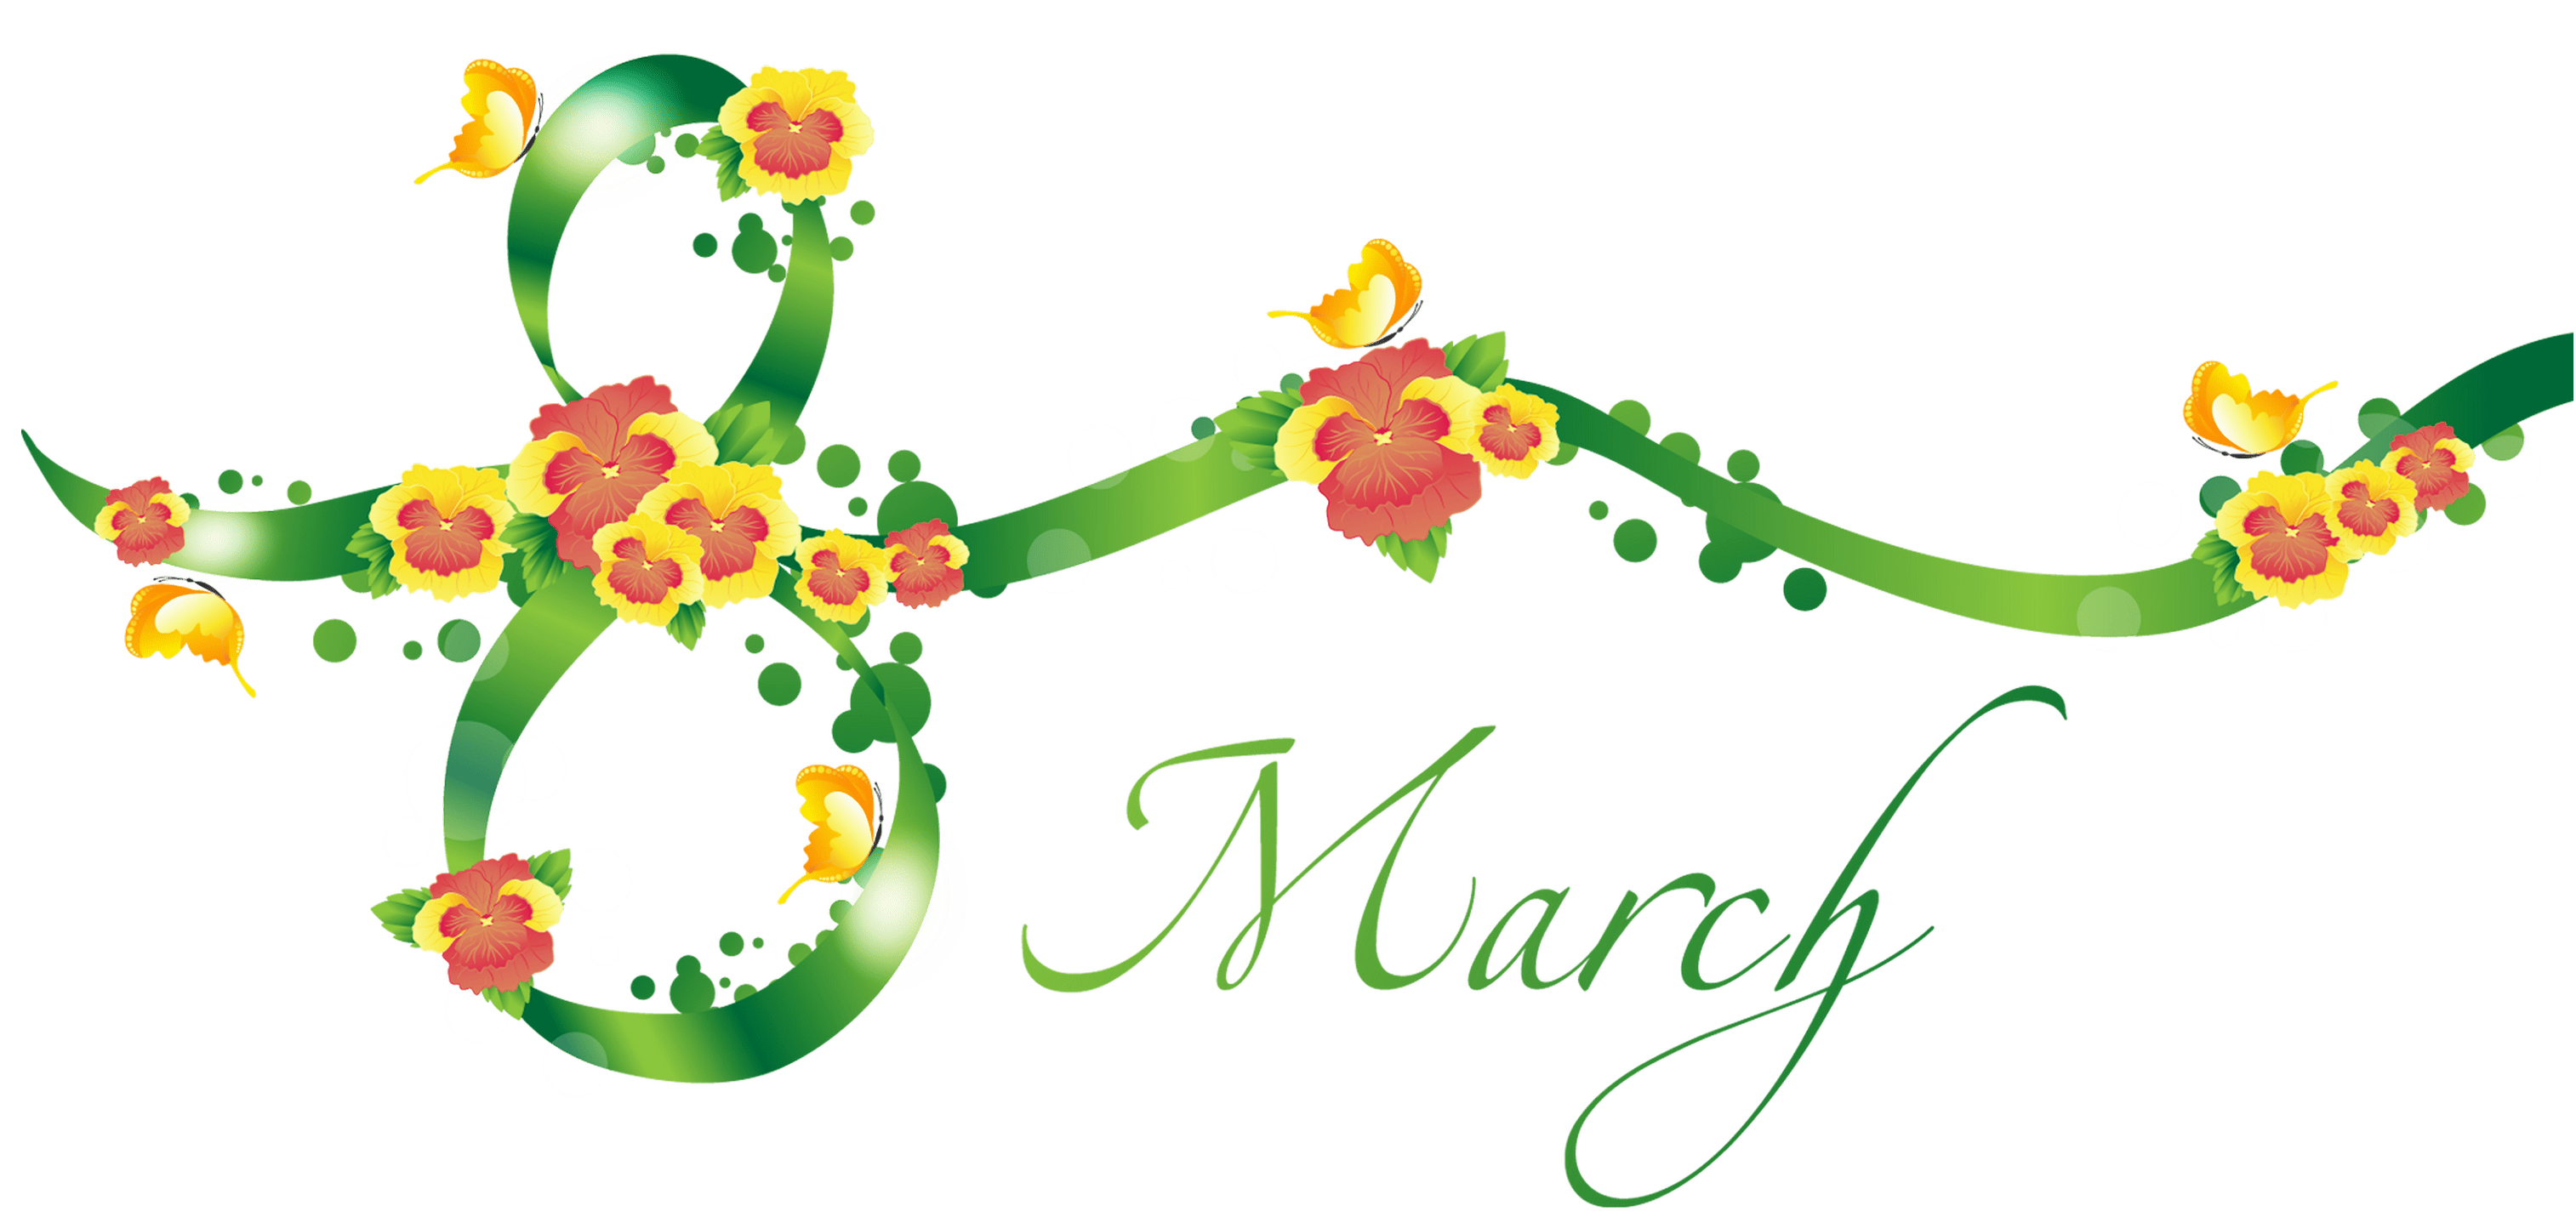 March Clipart for Facebook.